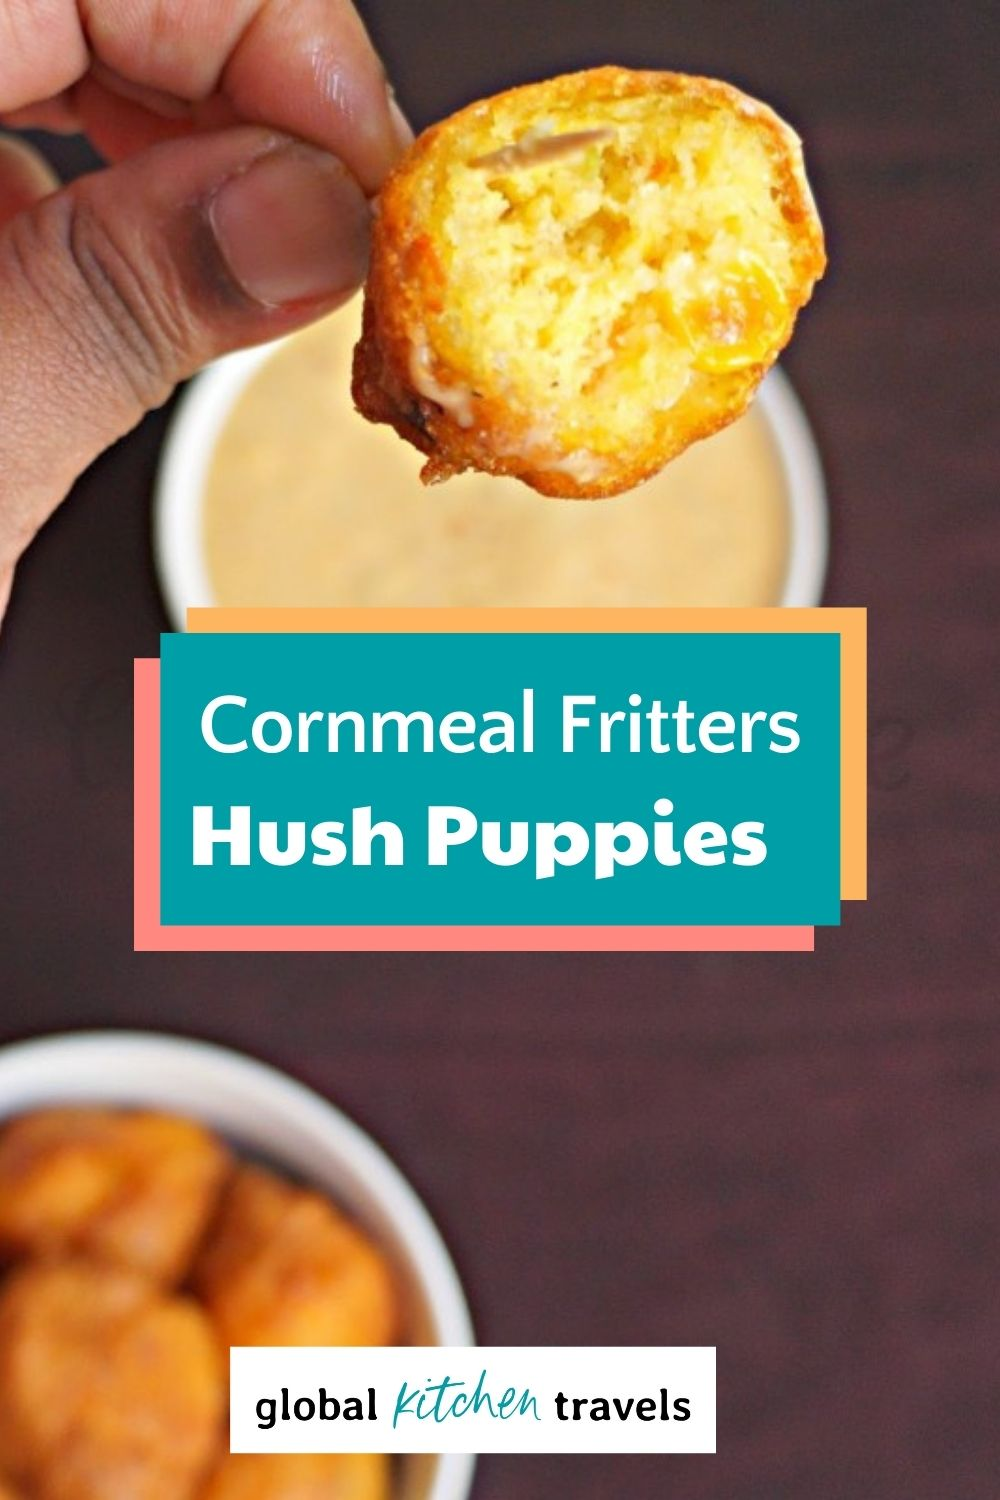 Hush Puppies & aioli with text